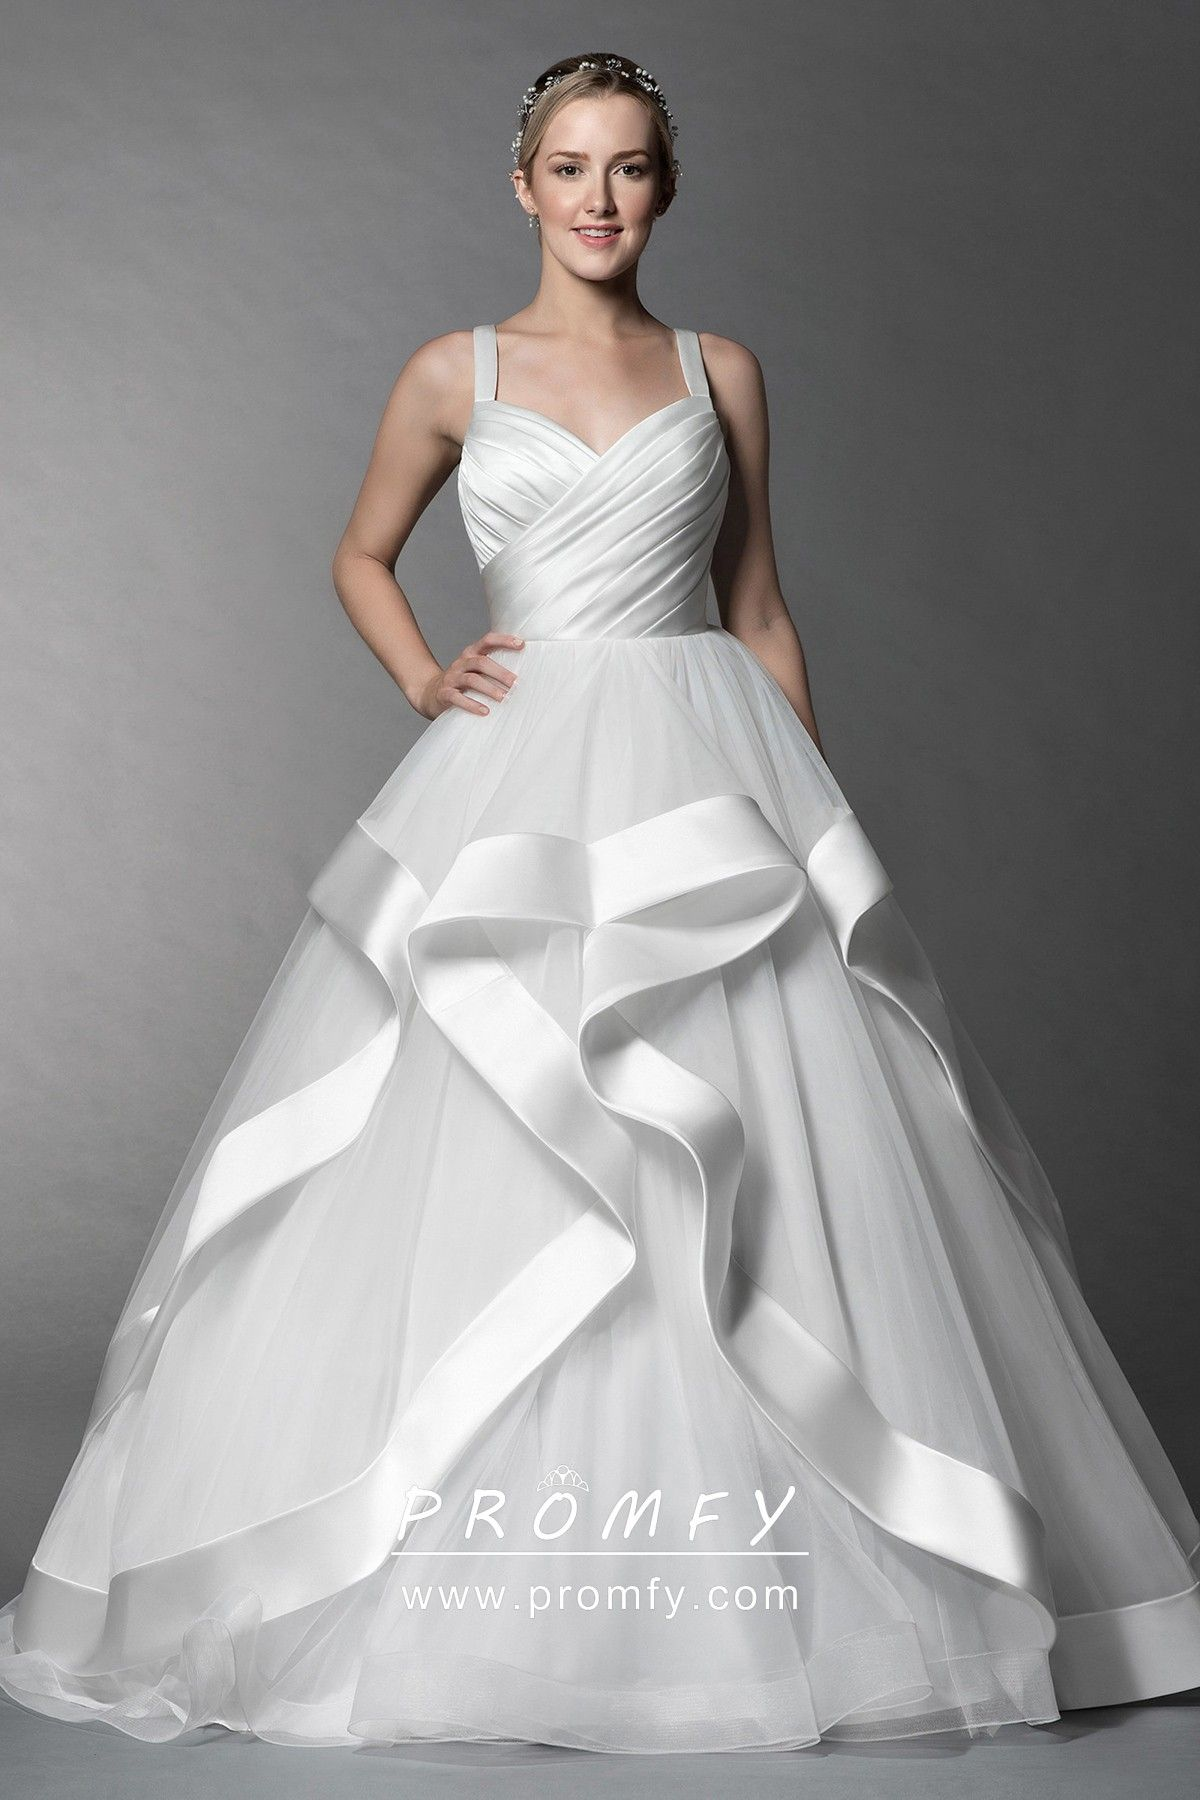 35++ What is the best wedding dress for broad shoulders ideas in 2021